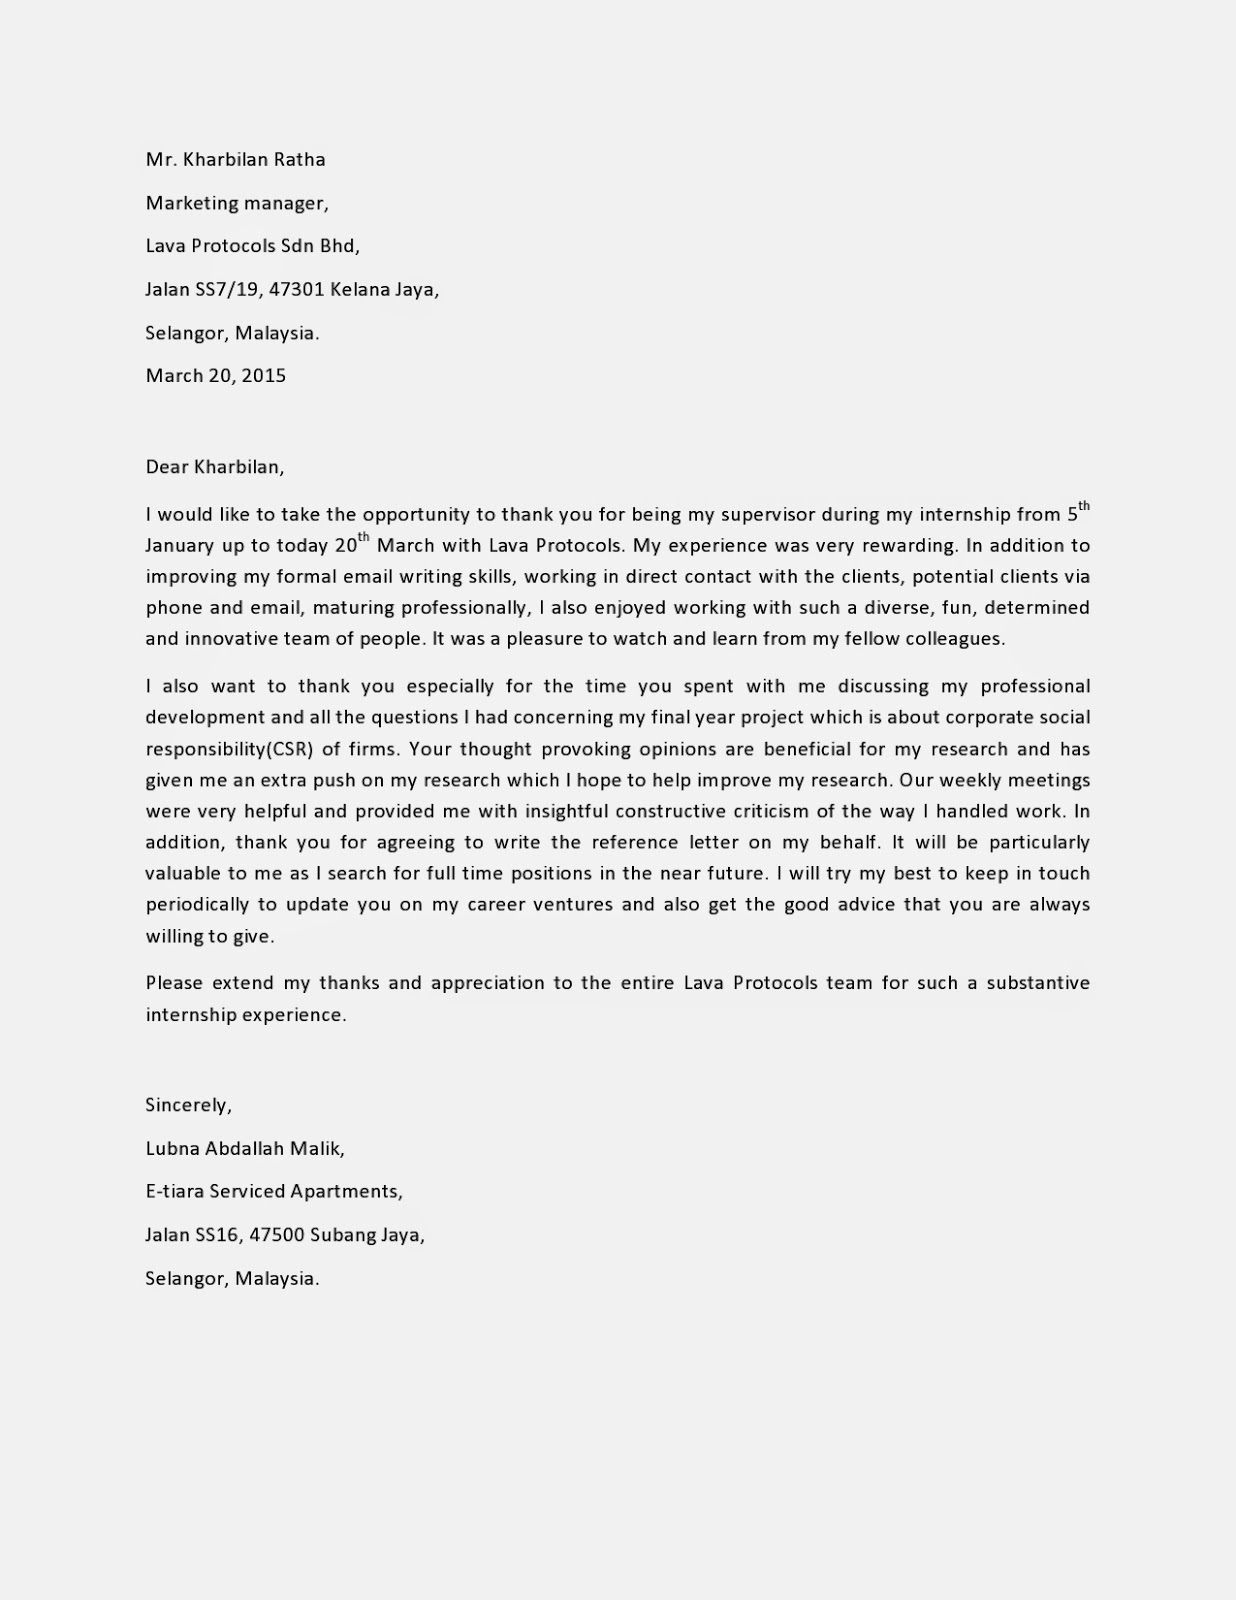 internship thank you letter to supervisor resume builder internship thank you letter to supervisor sample post internship thank you letter the balance appointment letter